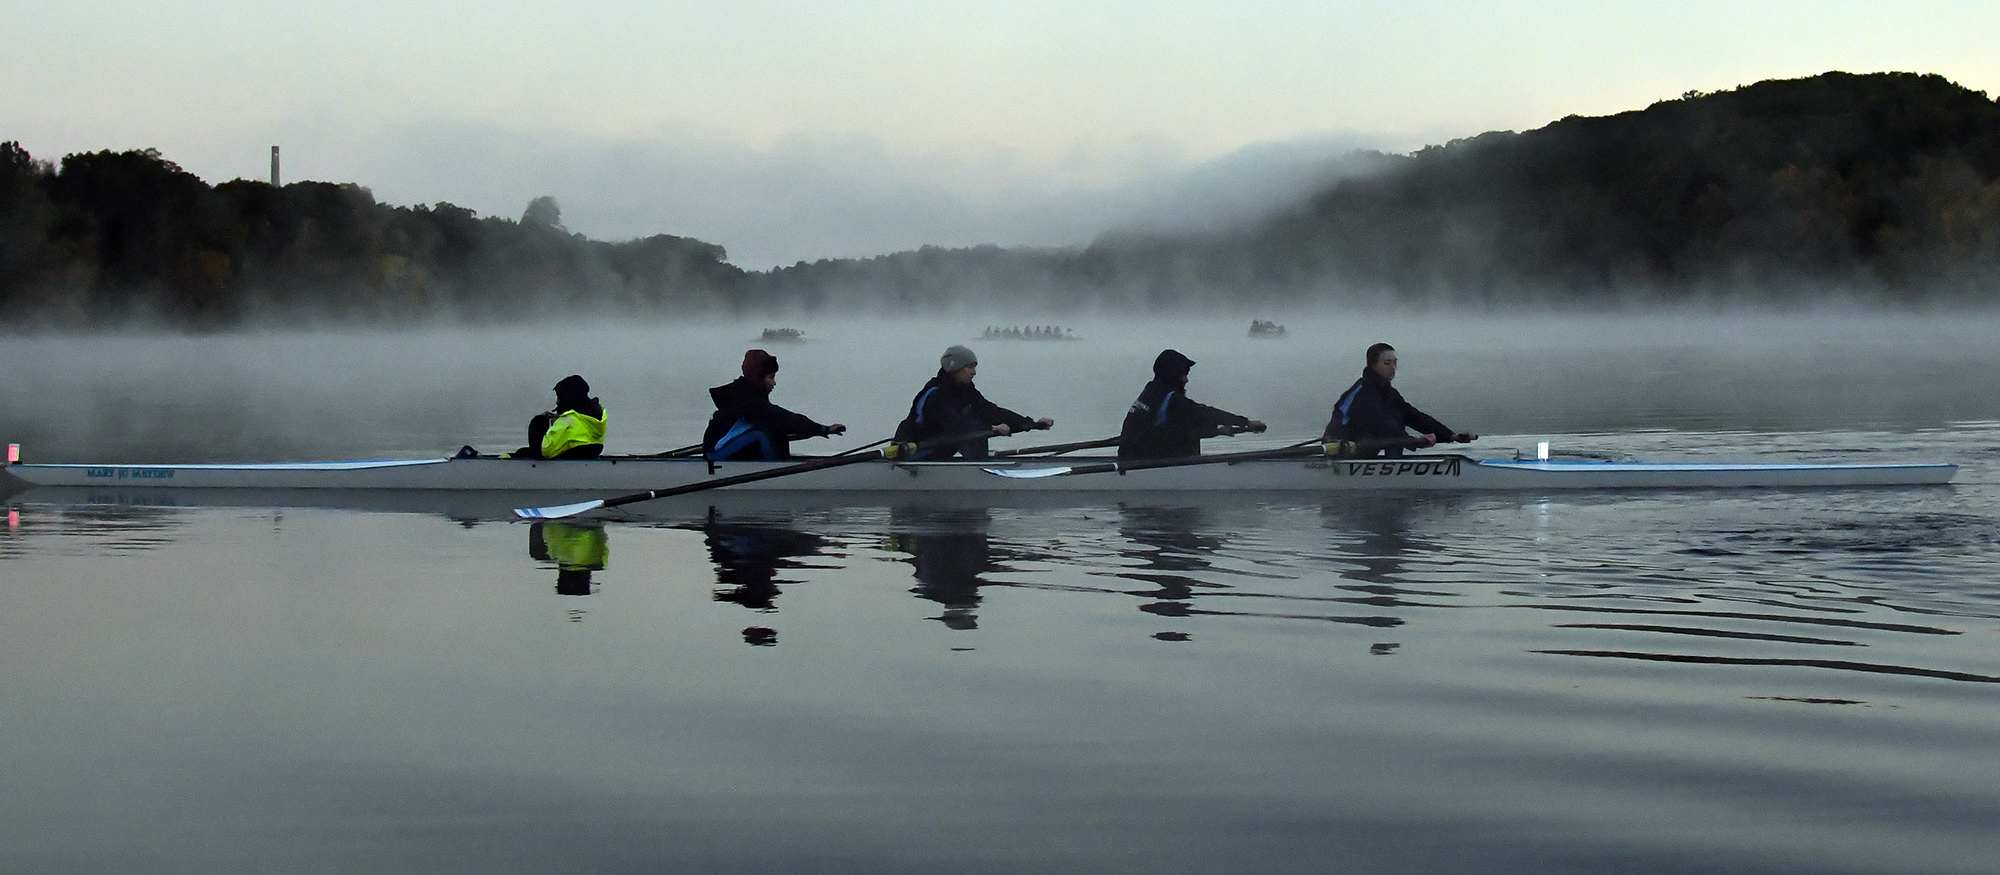 Action photo of a four-boat crew in rowing on the Connecticut River.